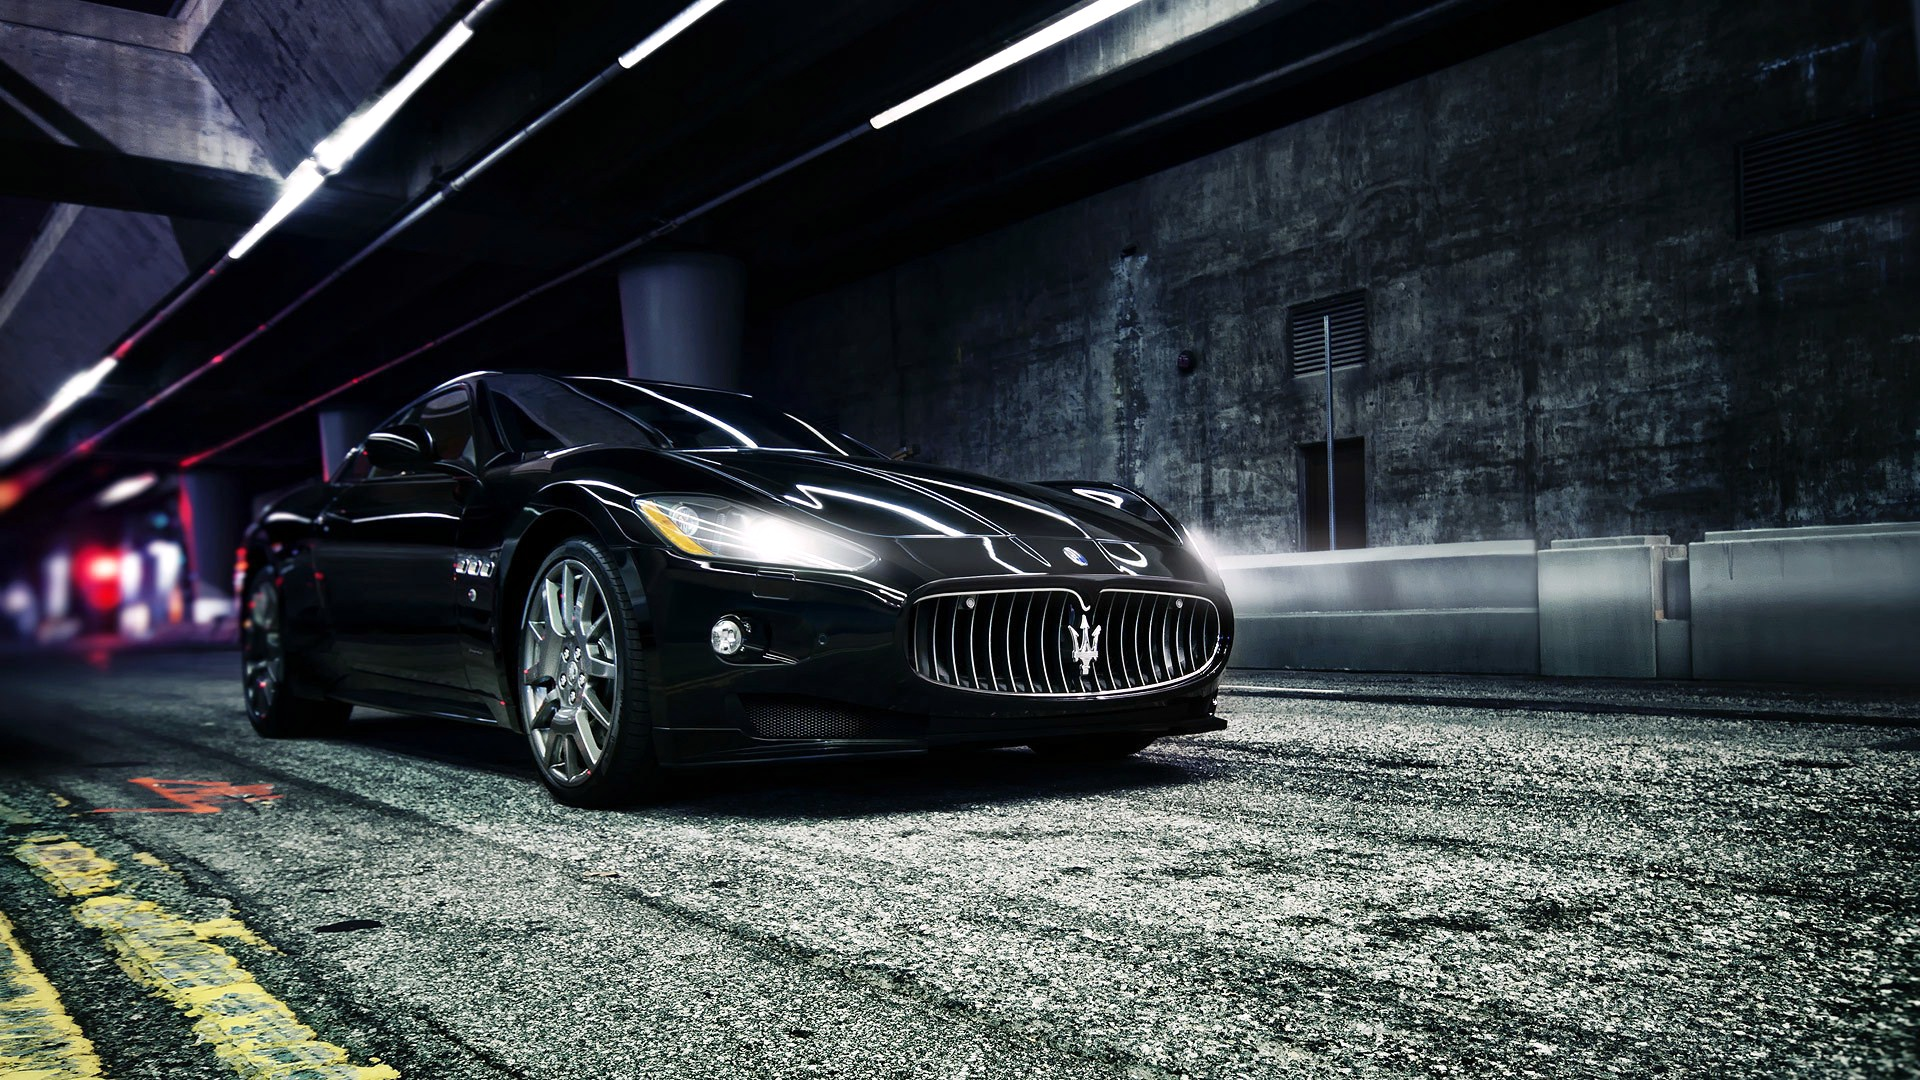 Maserati Wallpaper High Definition 1062 Wallpaper Cool 1920x1080